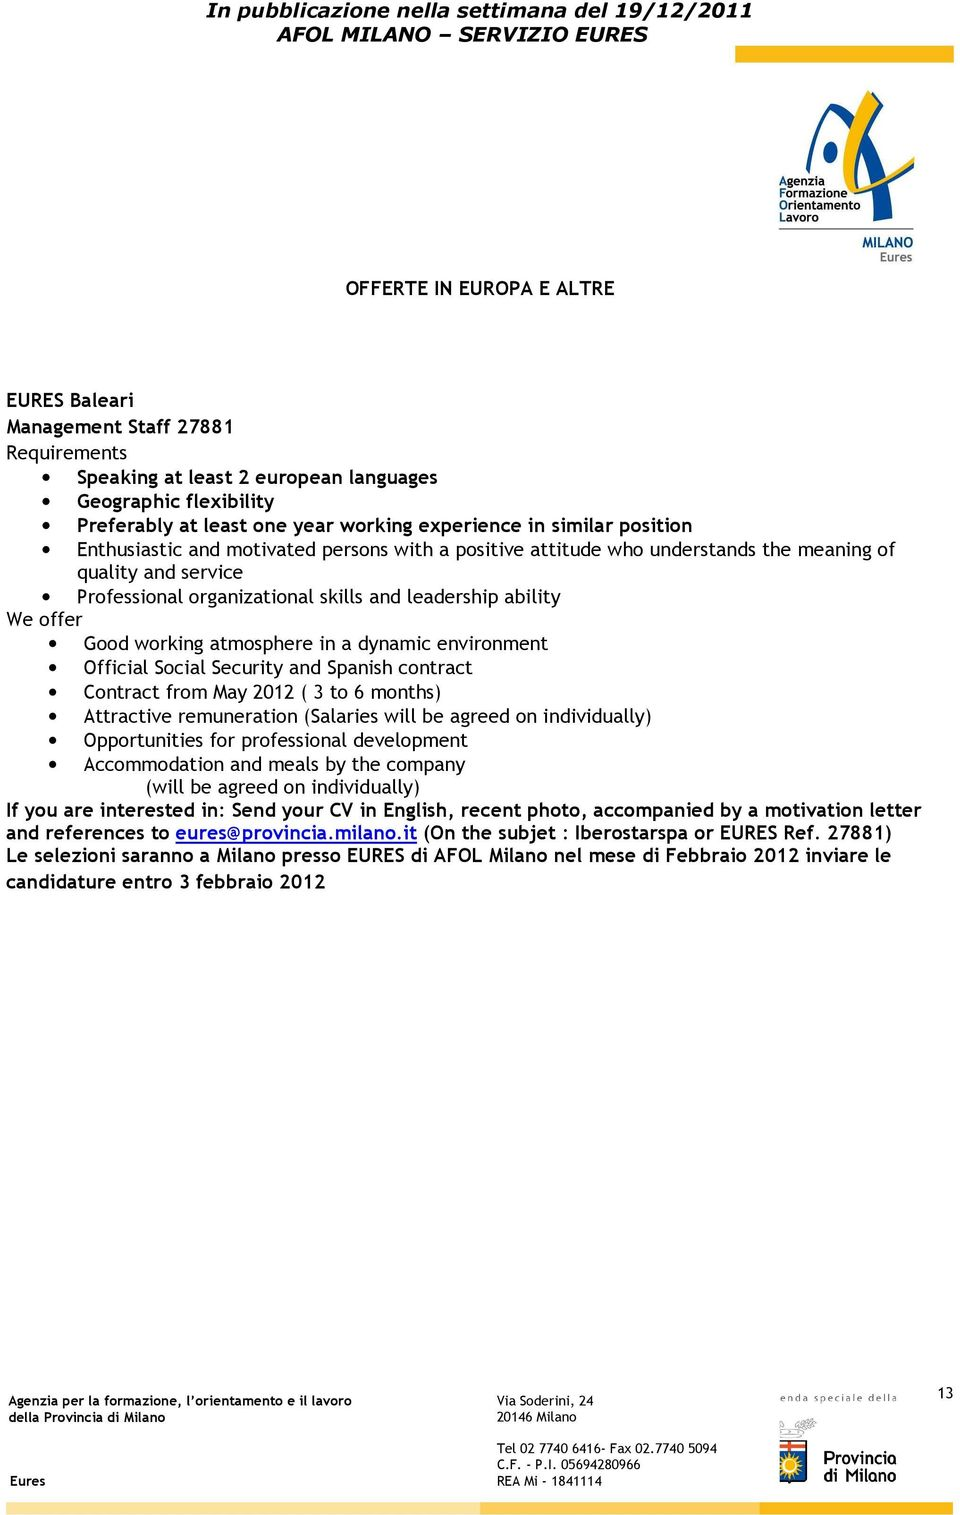 environment Official Social Security and Spanish contract Contract from May 2012 ( 3 to 6 months) Attractive remuneration (Salaries will be agreed on individually) Opportunities for professional